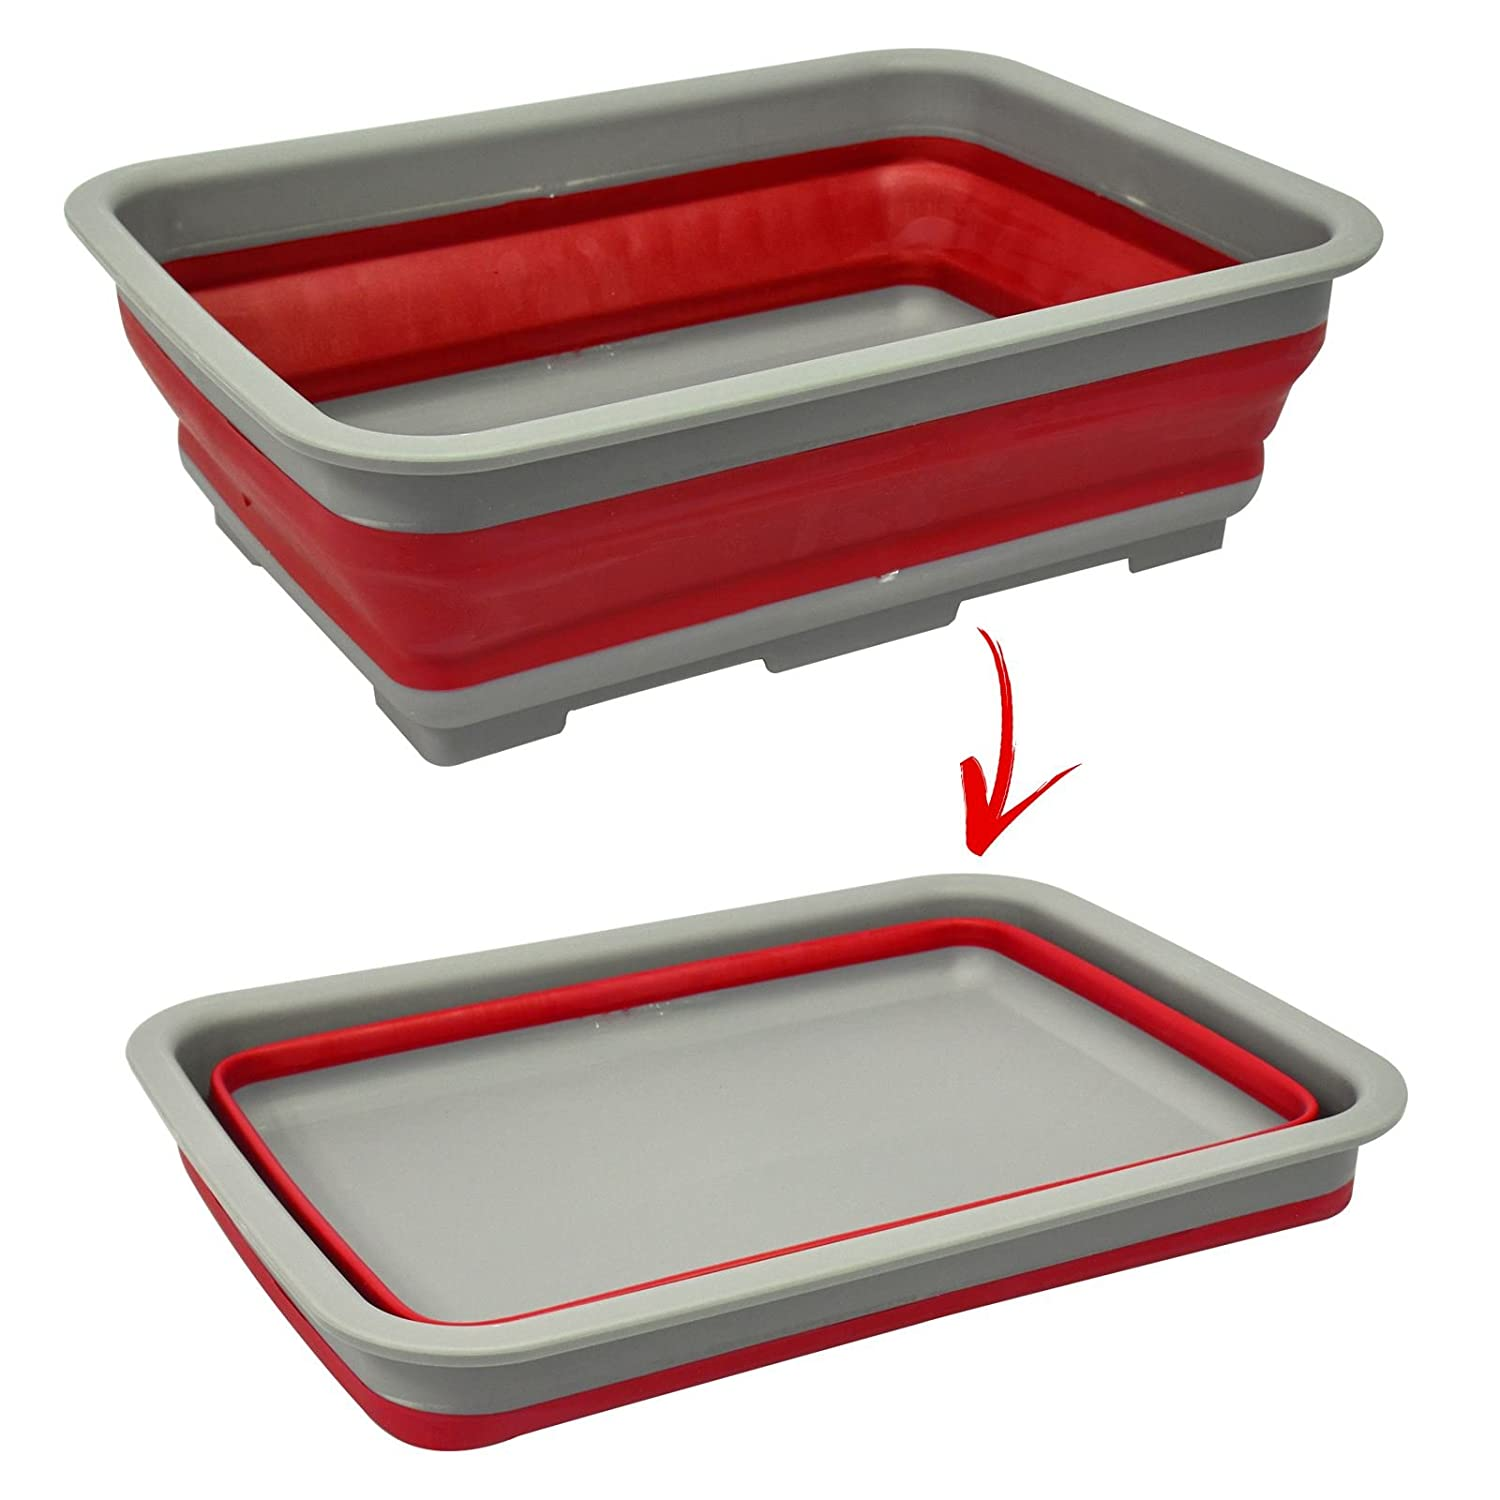 Foldable Collapsible Washing Up Bowl Dish Kitchen Camping Caravan Boat Travel Water Container Easy Pop Out Silicone Plastic Design ASAB